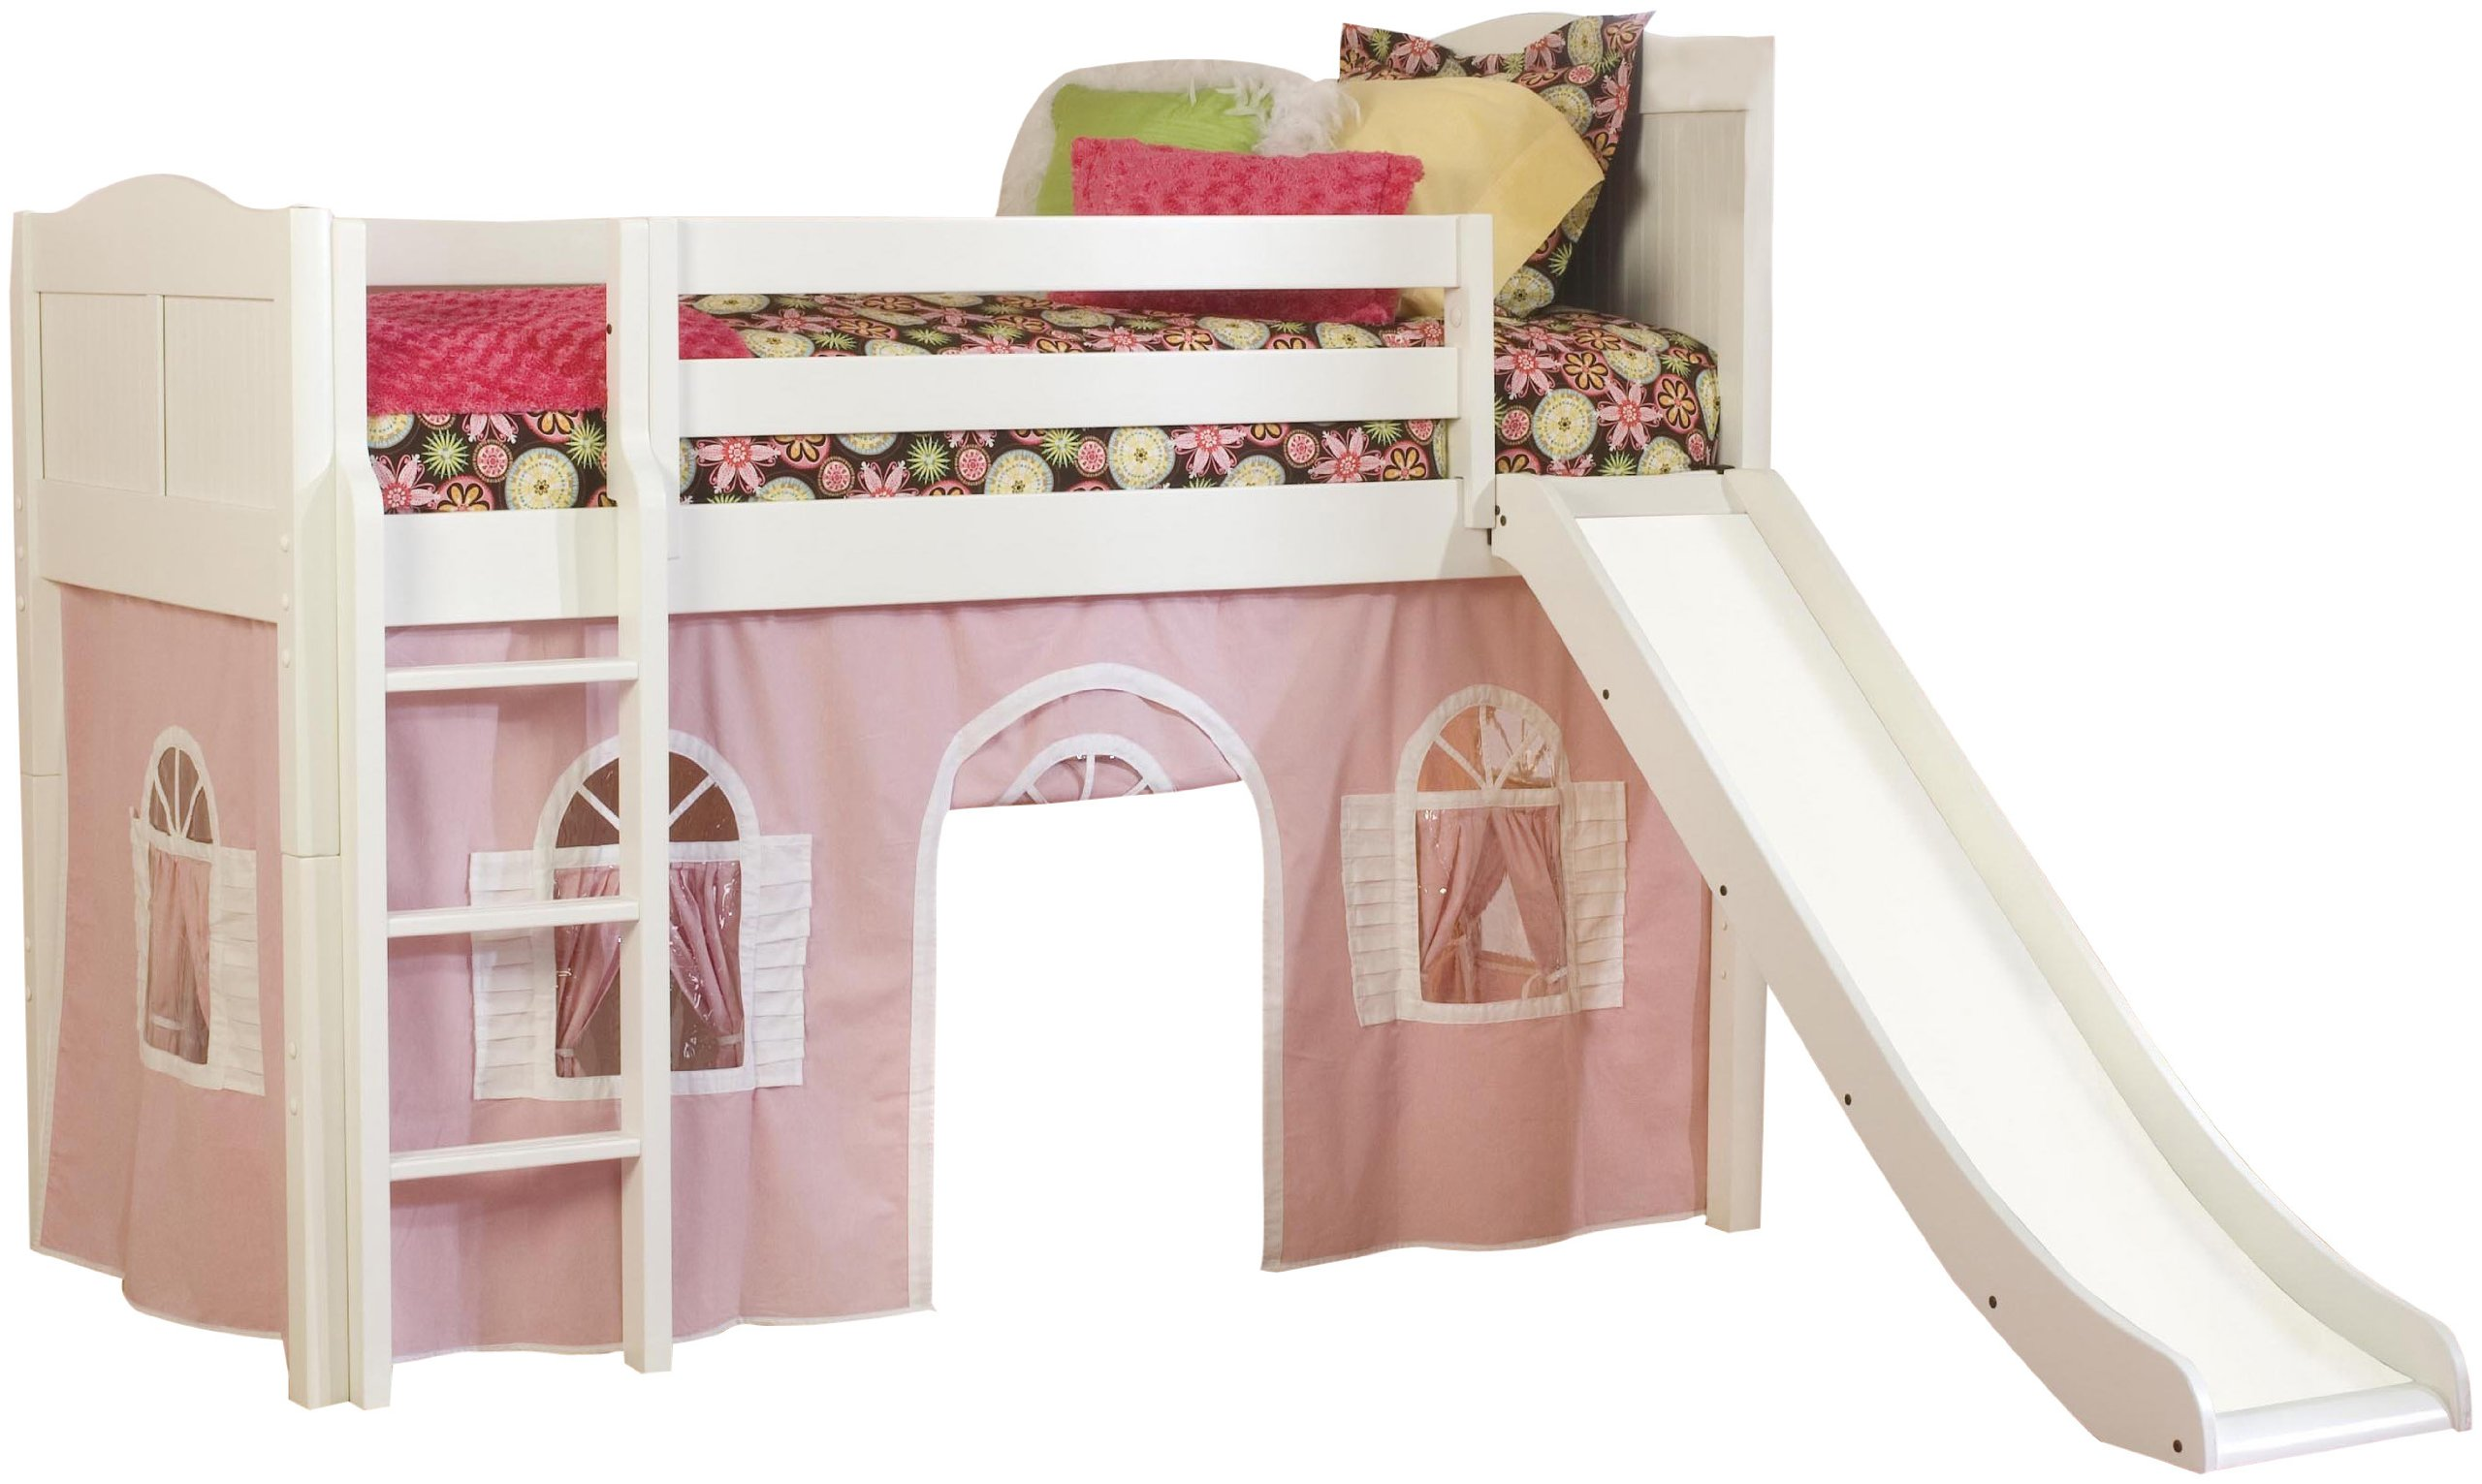 Kids Bunk Bed with Slide 2560 x 1531